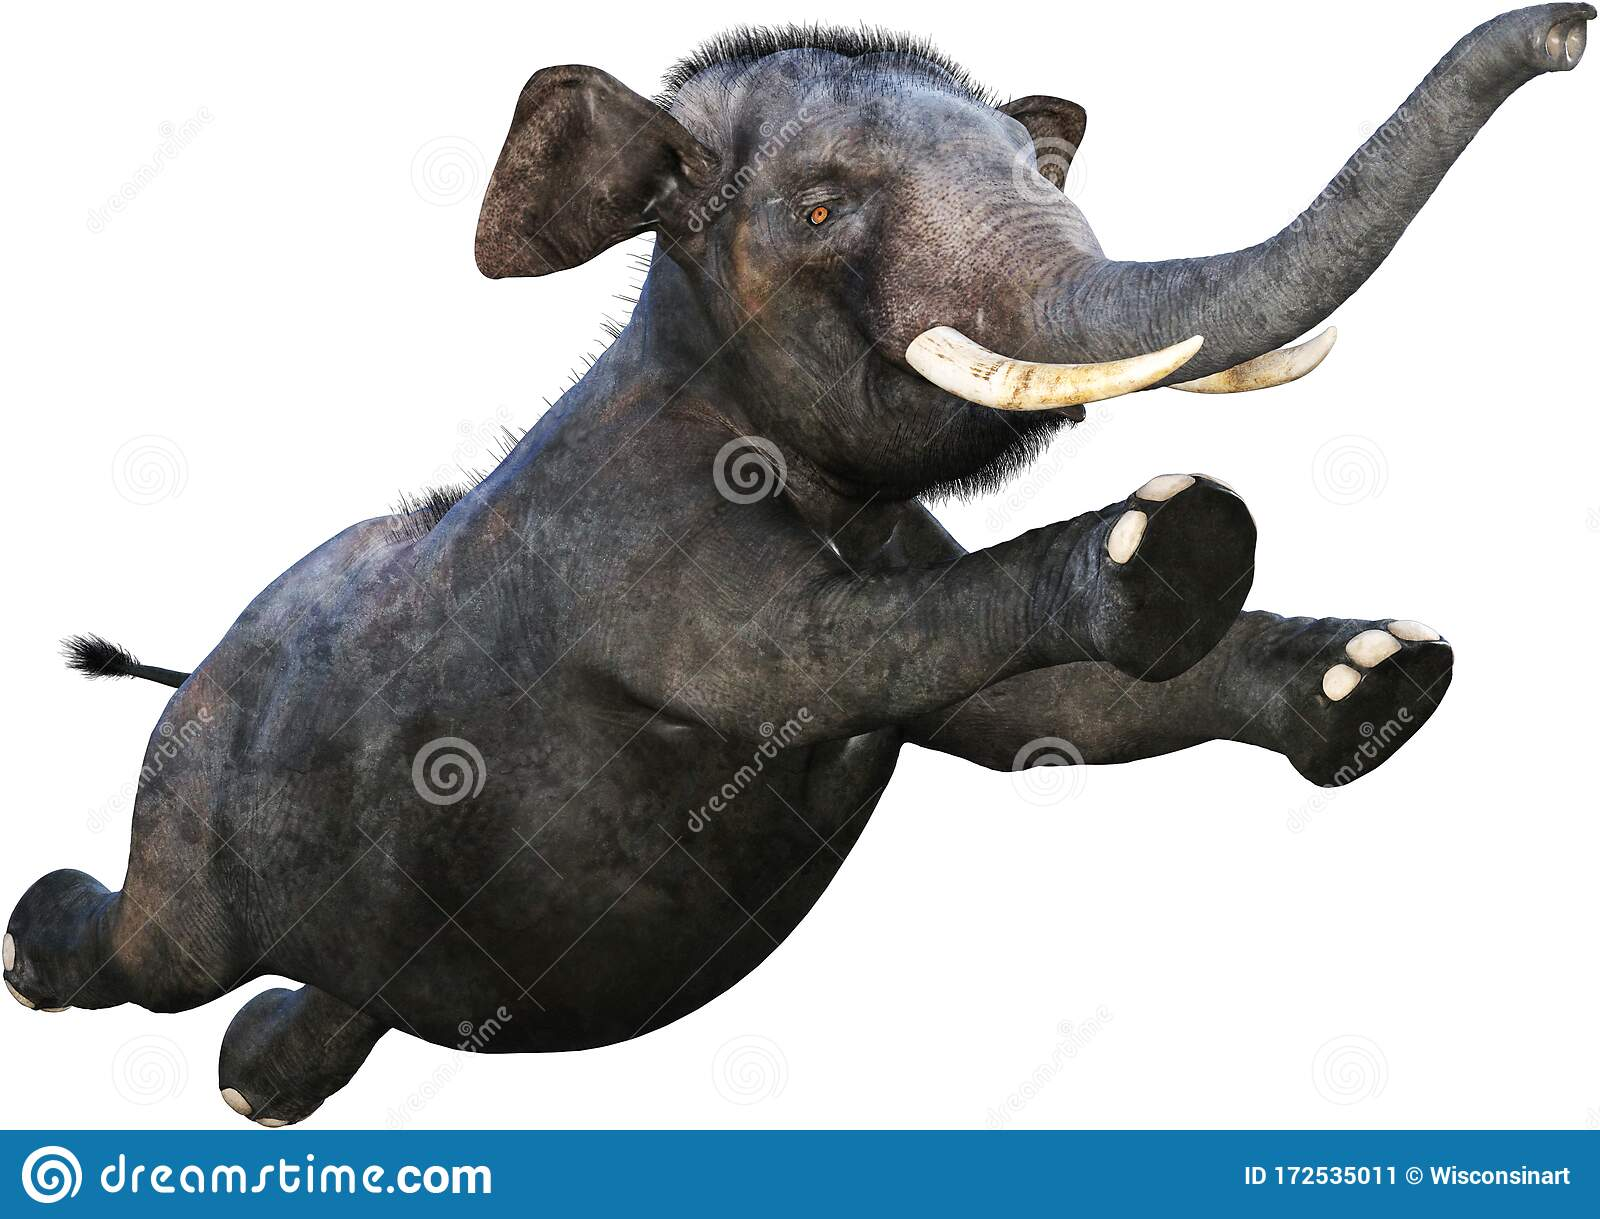 Elephant Png Photos Free Royalty Free Stock Photos From Dreamstime All images is transparent background and free download. https www dreamstime com funny flying elephant watch big mammal take off fly sky isolated white png file available funny flying image172535011